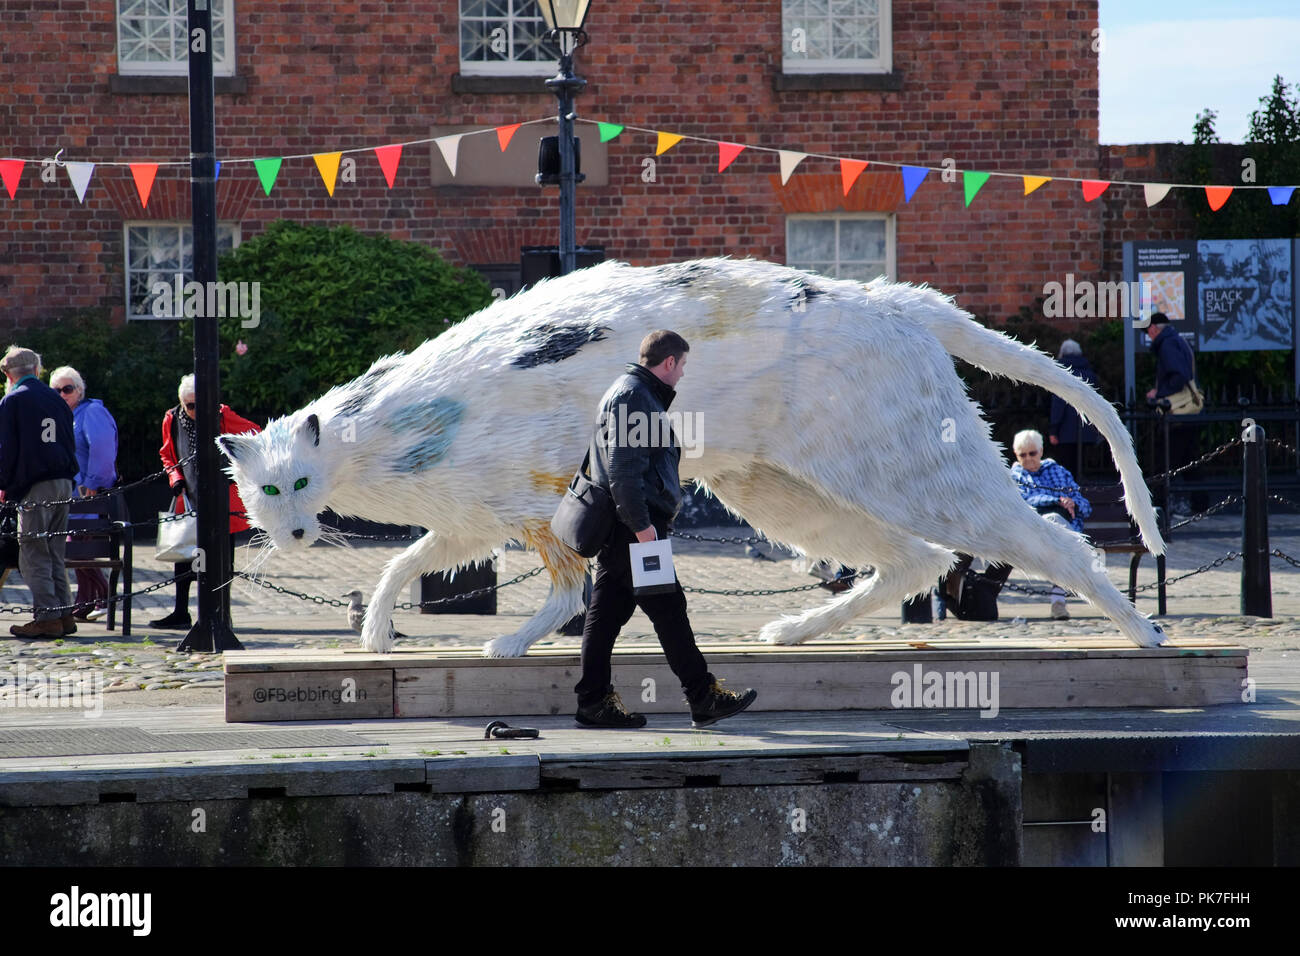 LIVERPOOL, UK. 11 September 2018. Visitors at Liverpool's Albert Dock enjoy the sunshine near the 'Ship's Cat' a fifteen foot-long art installation by Liverpool artist Faith Bebbington, who creates hand-built, dynamic figurative sculptures of animals, using recycled waste materials. Inspired by legendary feline seafarers like Ms Chibley, who circumnavigated the globe as chief rodent control officer on the tall ship Picton Castle.  Premos/Alamy Live News - Stock Image